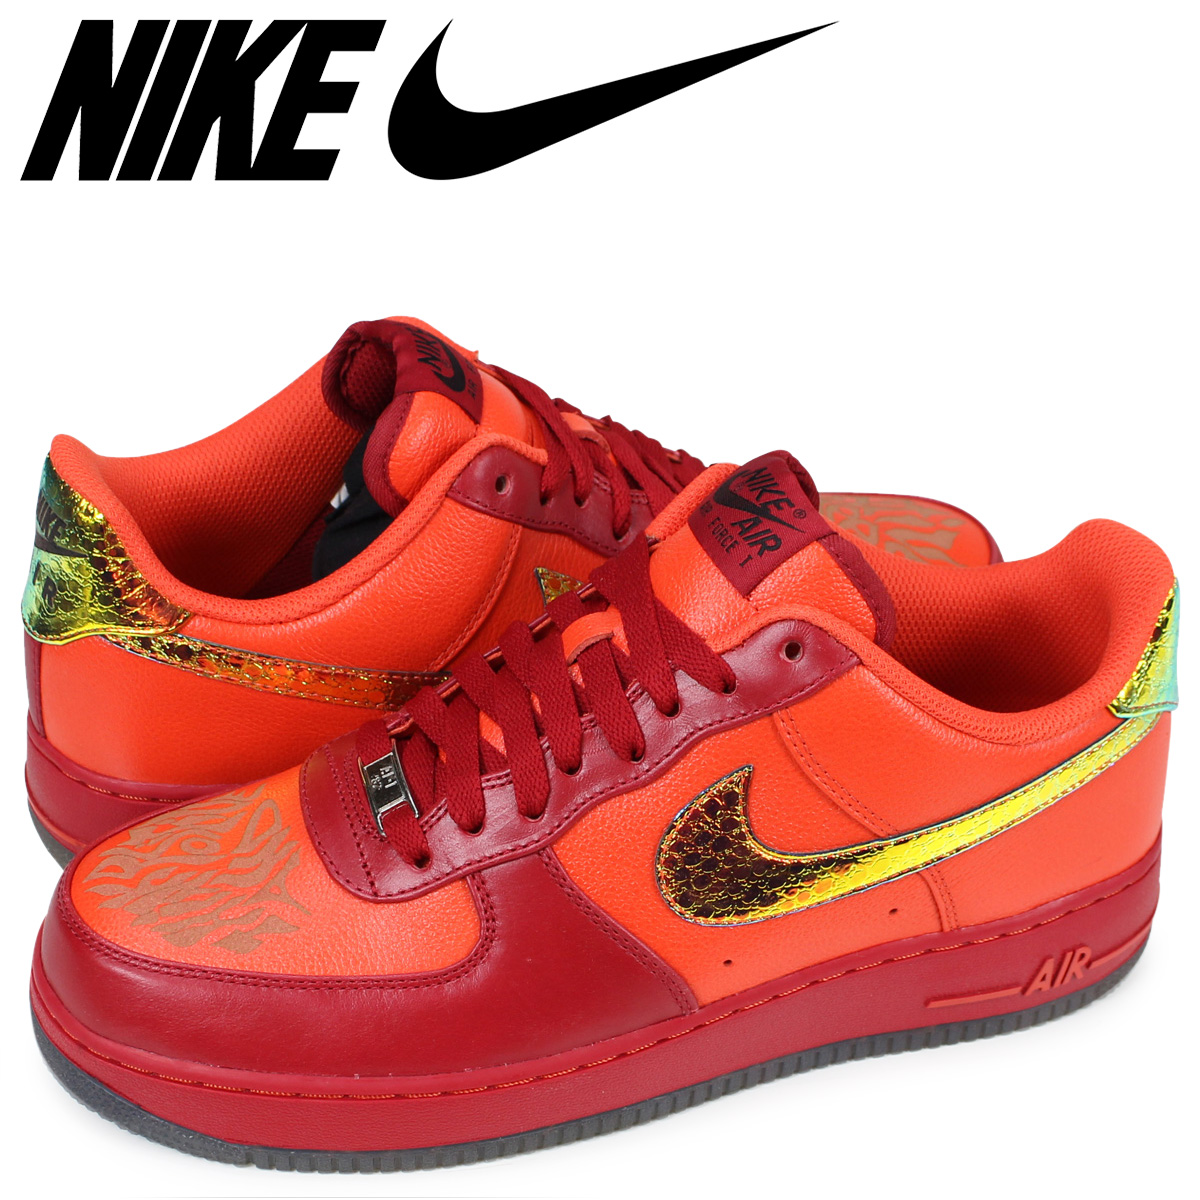 best loved 2d778 8a625 NIKE AIR FORCE 1 07 LE DOERNBECHER Nike air force 1 sneakers 349,440-800  men's ...